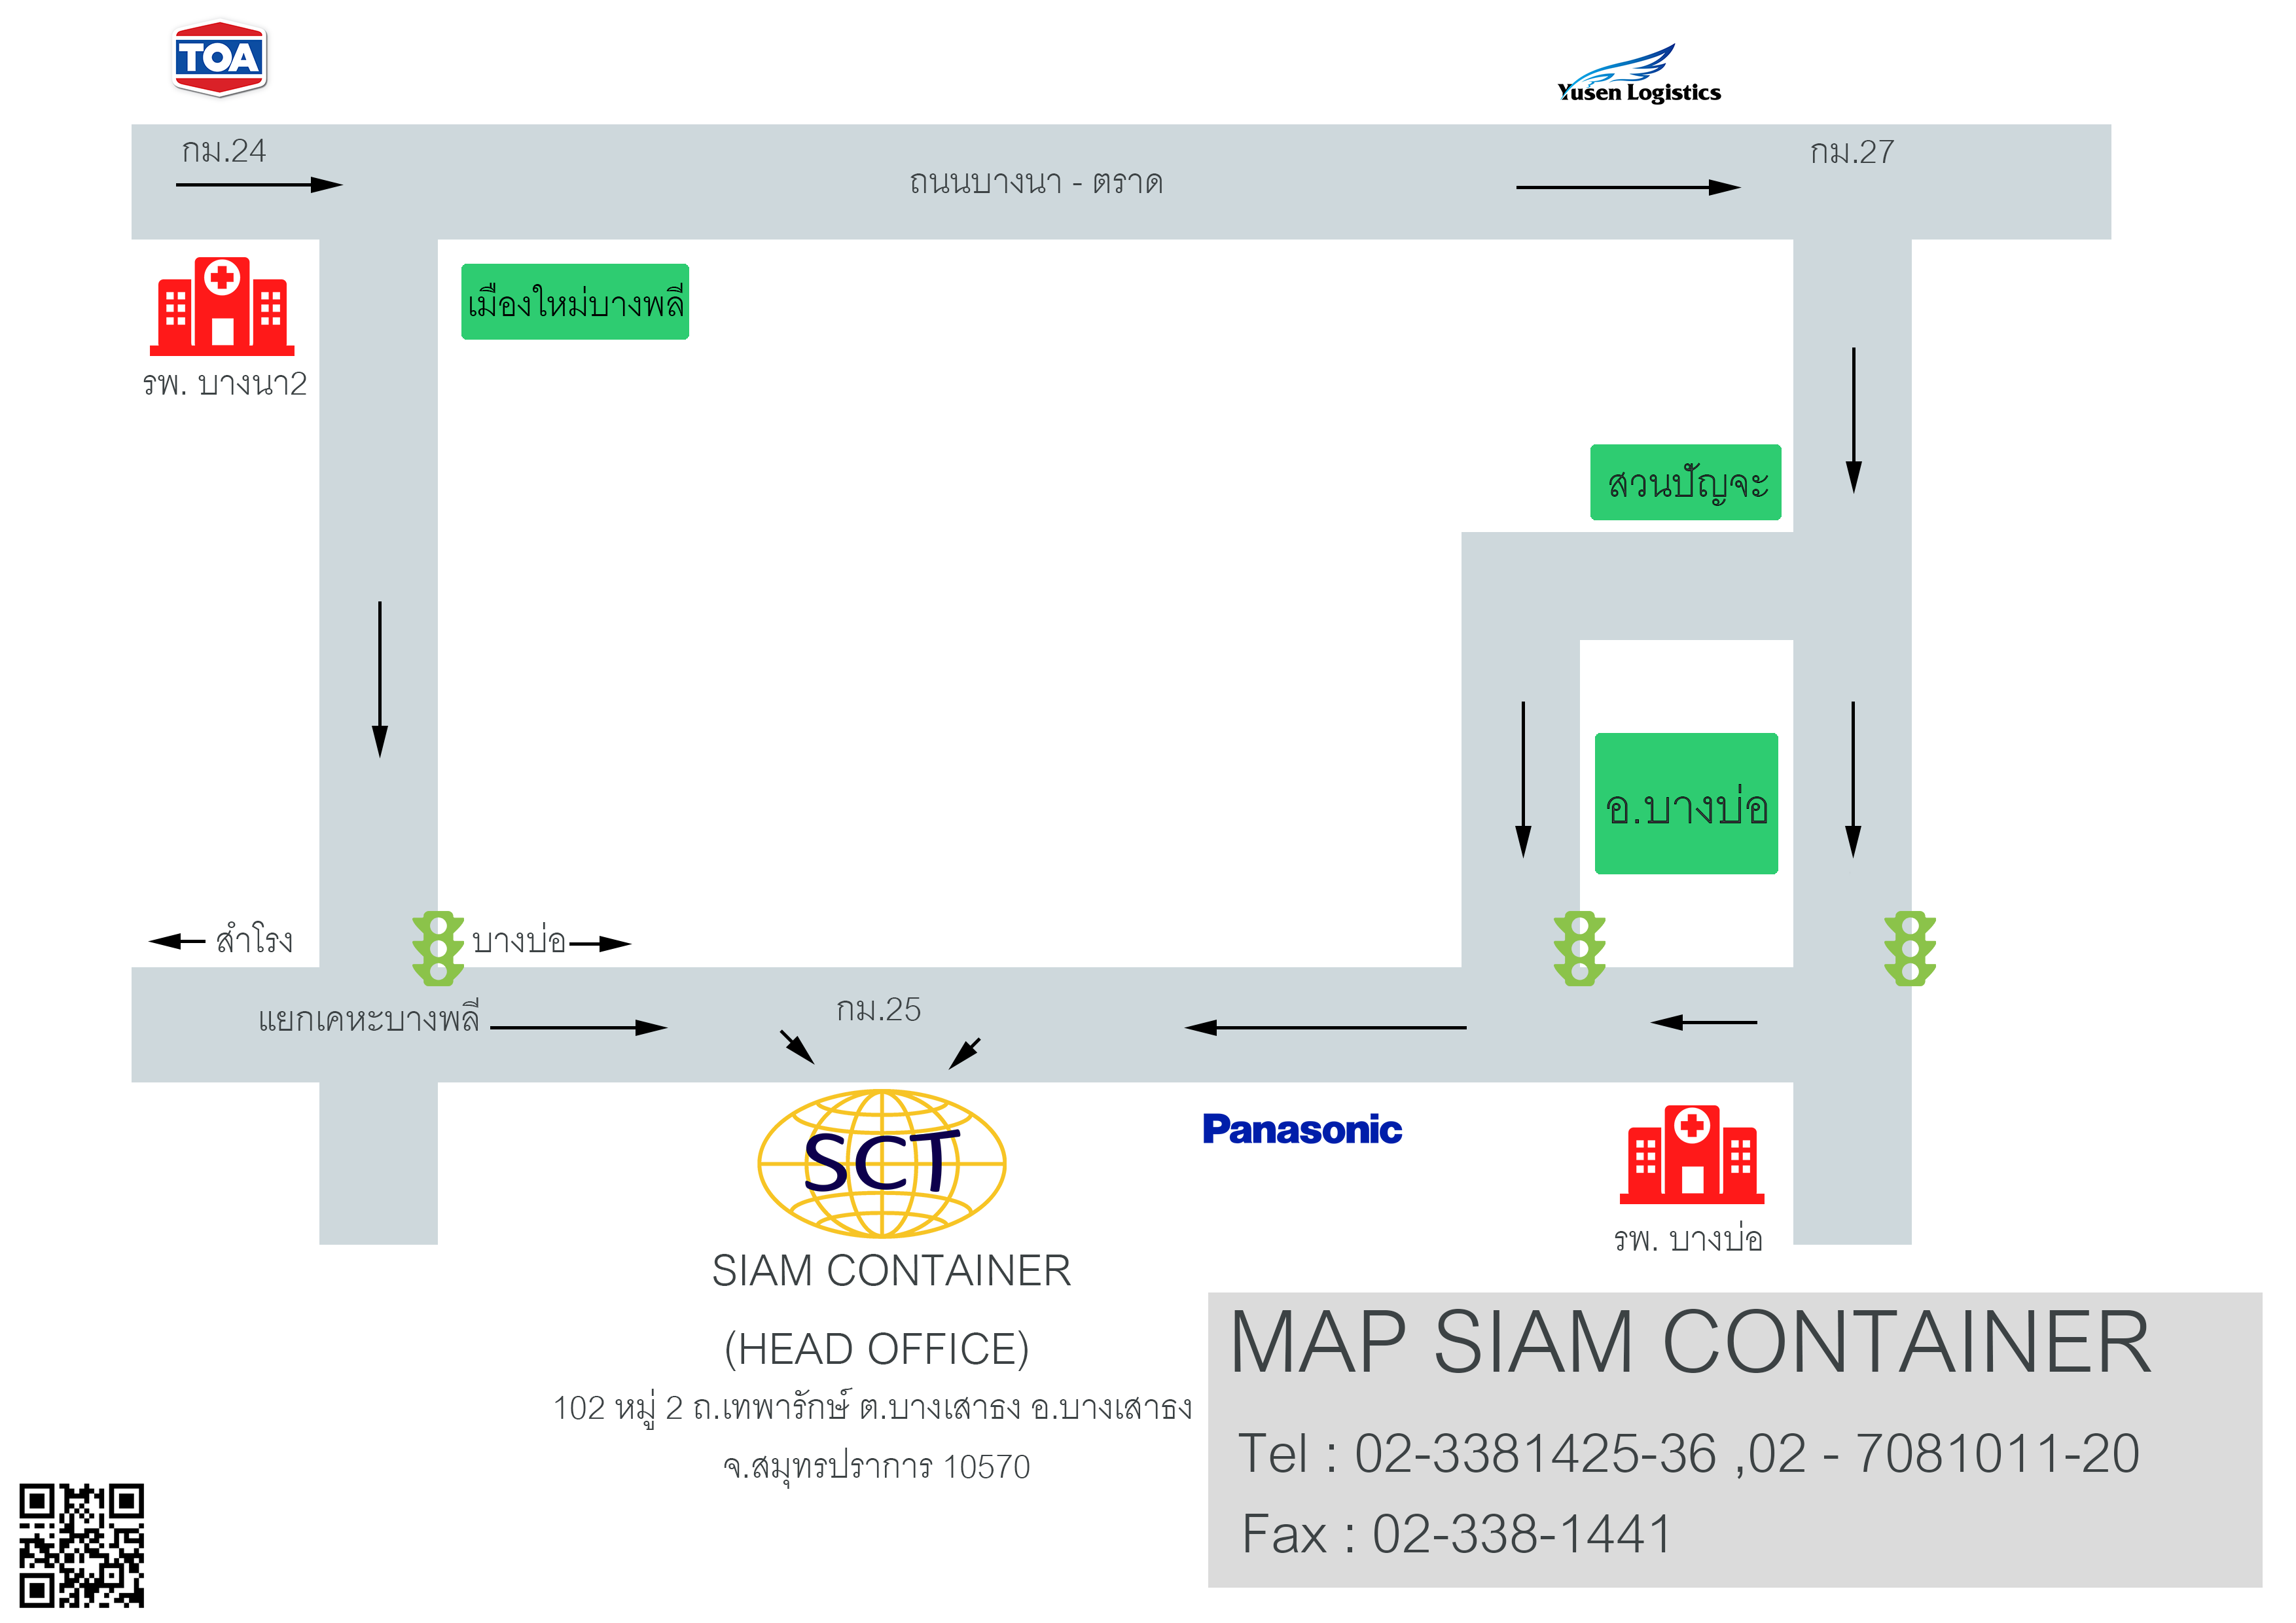 Contact - Siam Container Terminal ,siamcontainer,siam,container